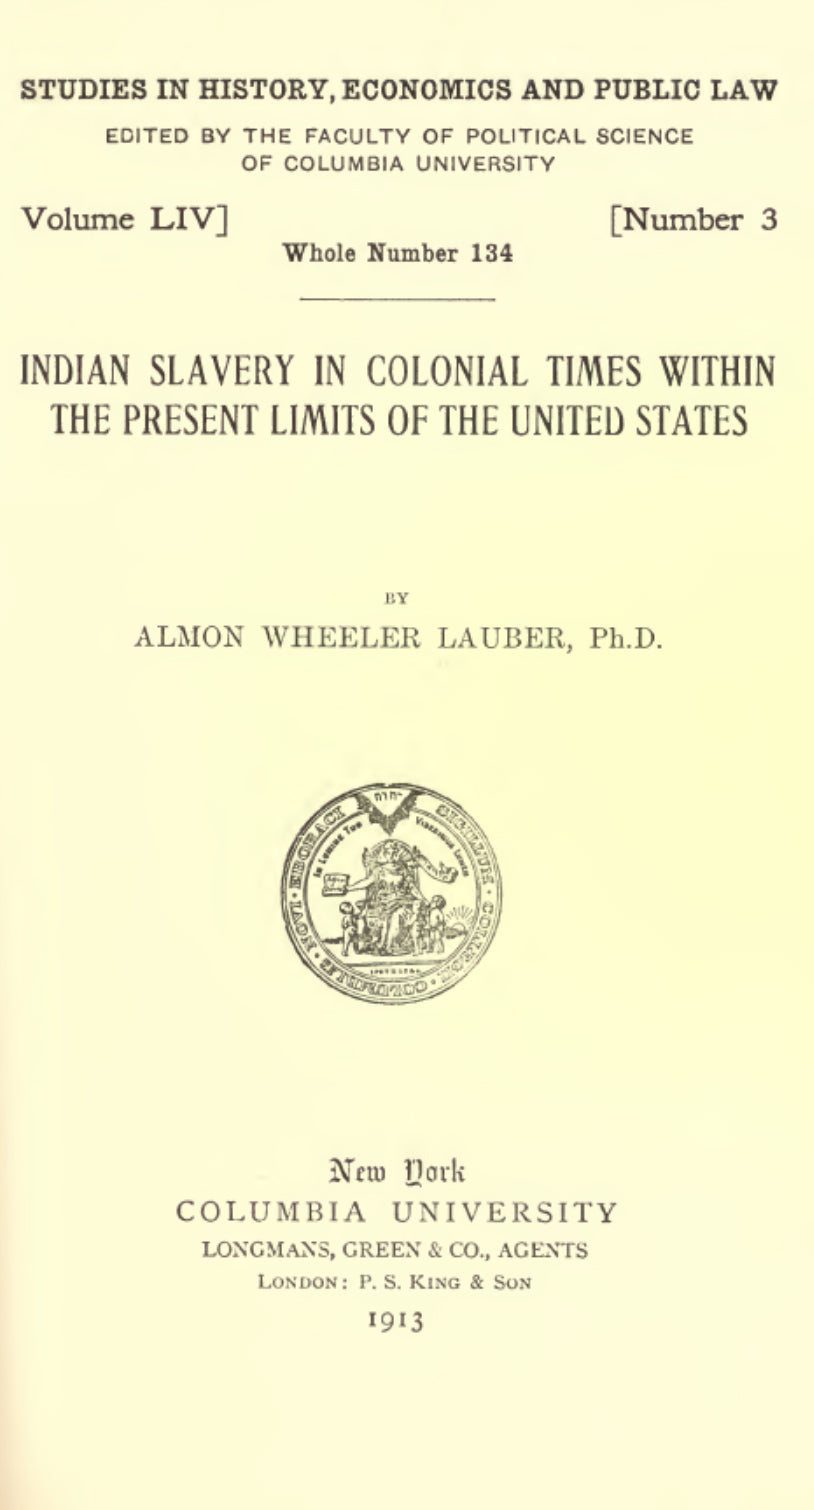 1913 Indian slavery in colonial times within the present limits of the United States